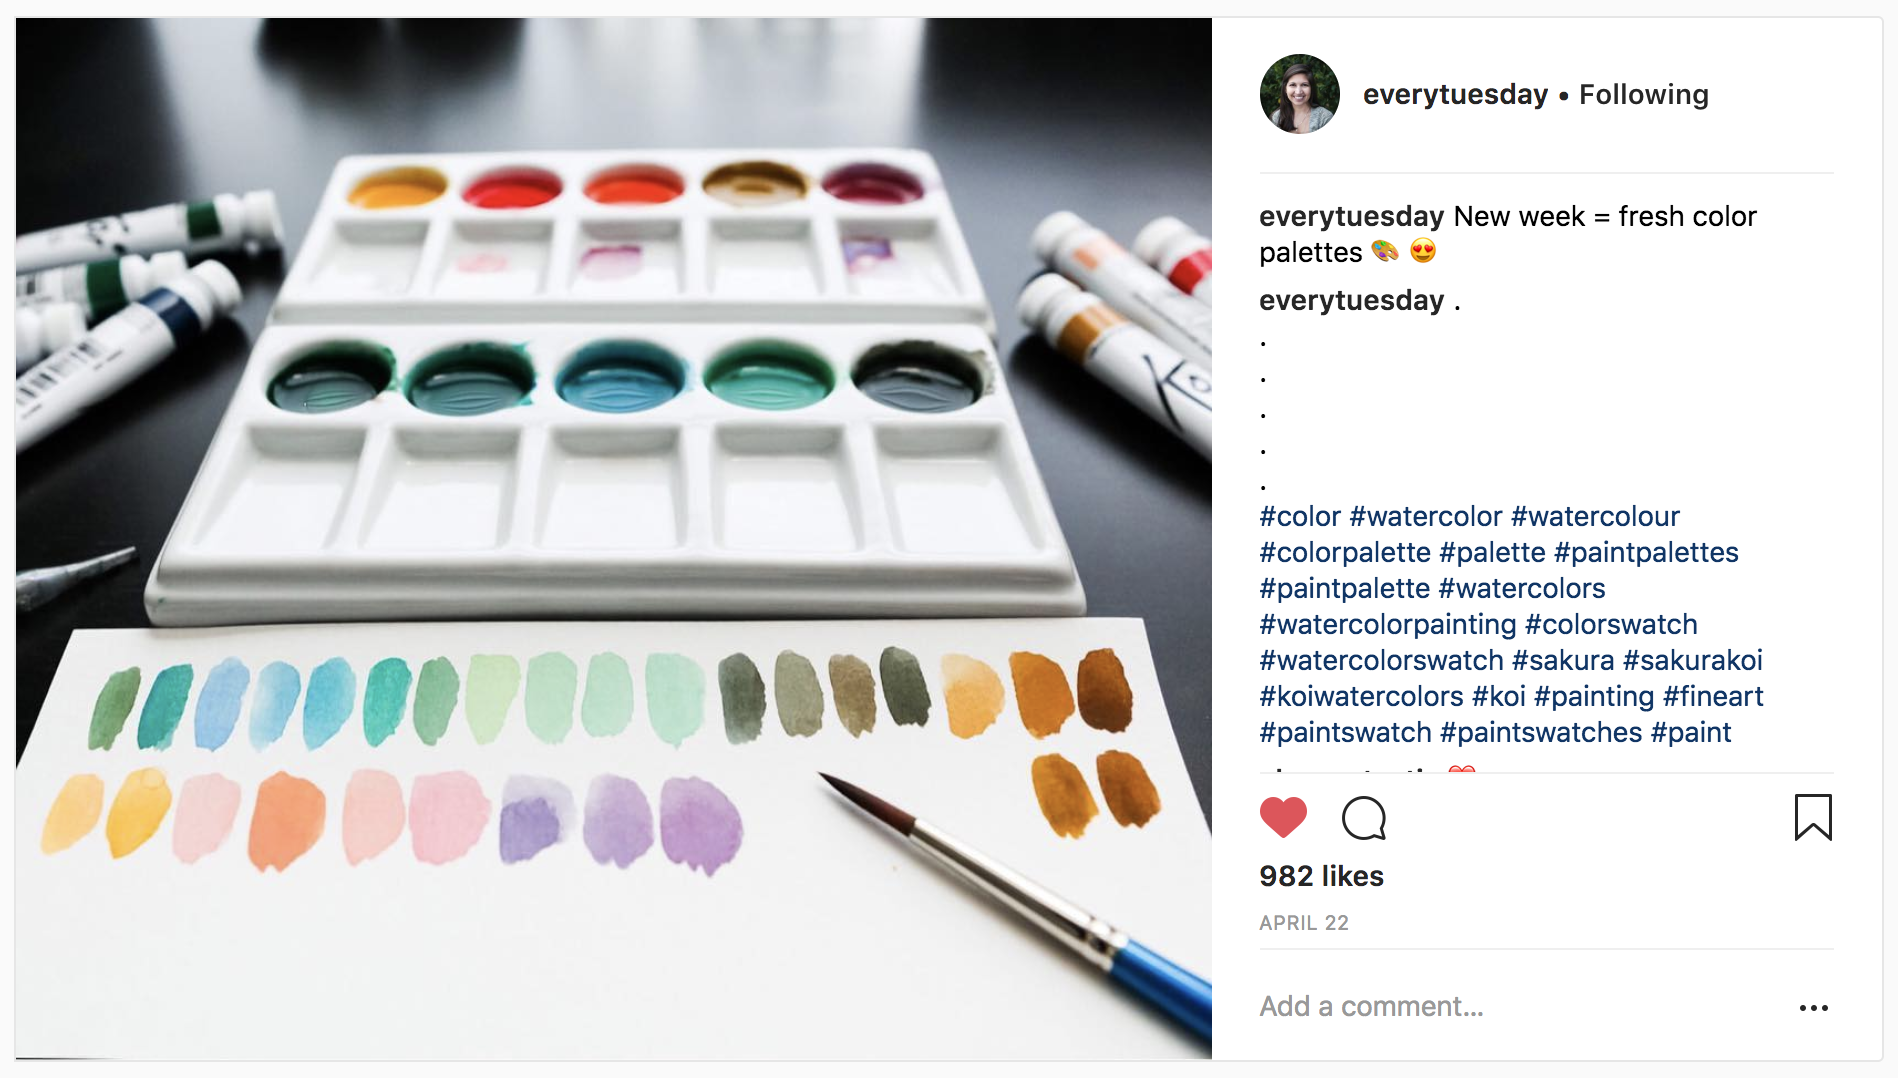 10 Watercolor Artist Inspiration Accounts to Follow: everytuesday